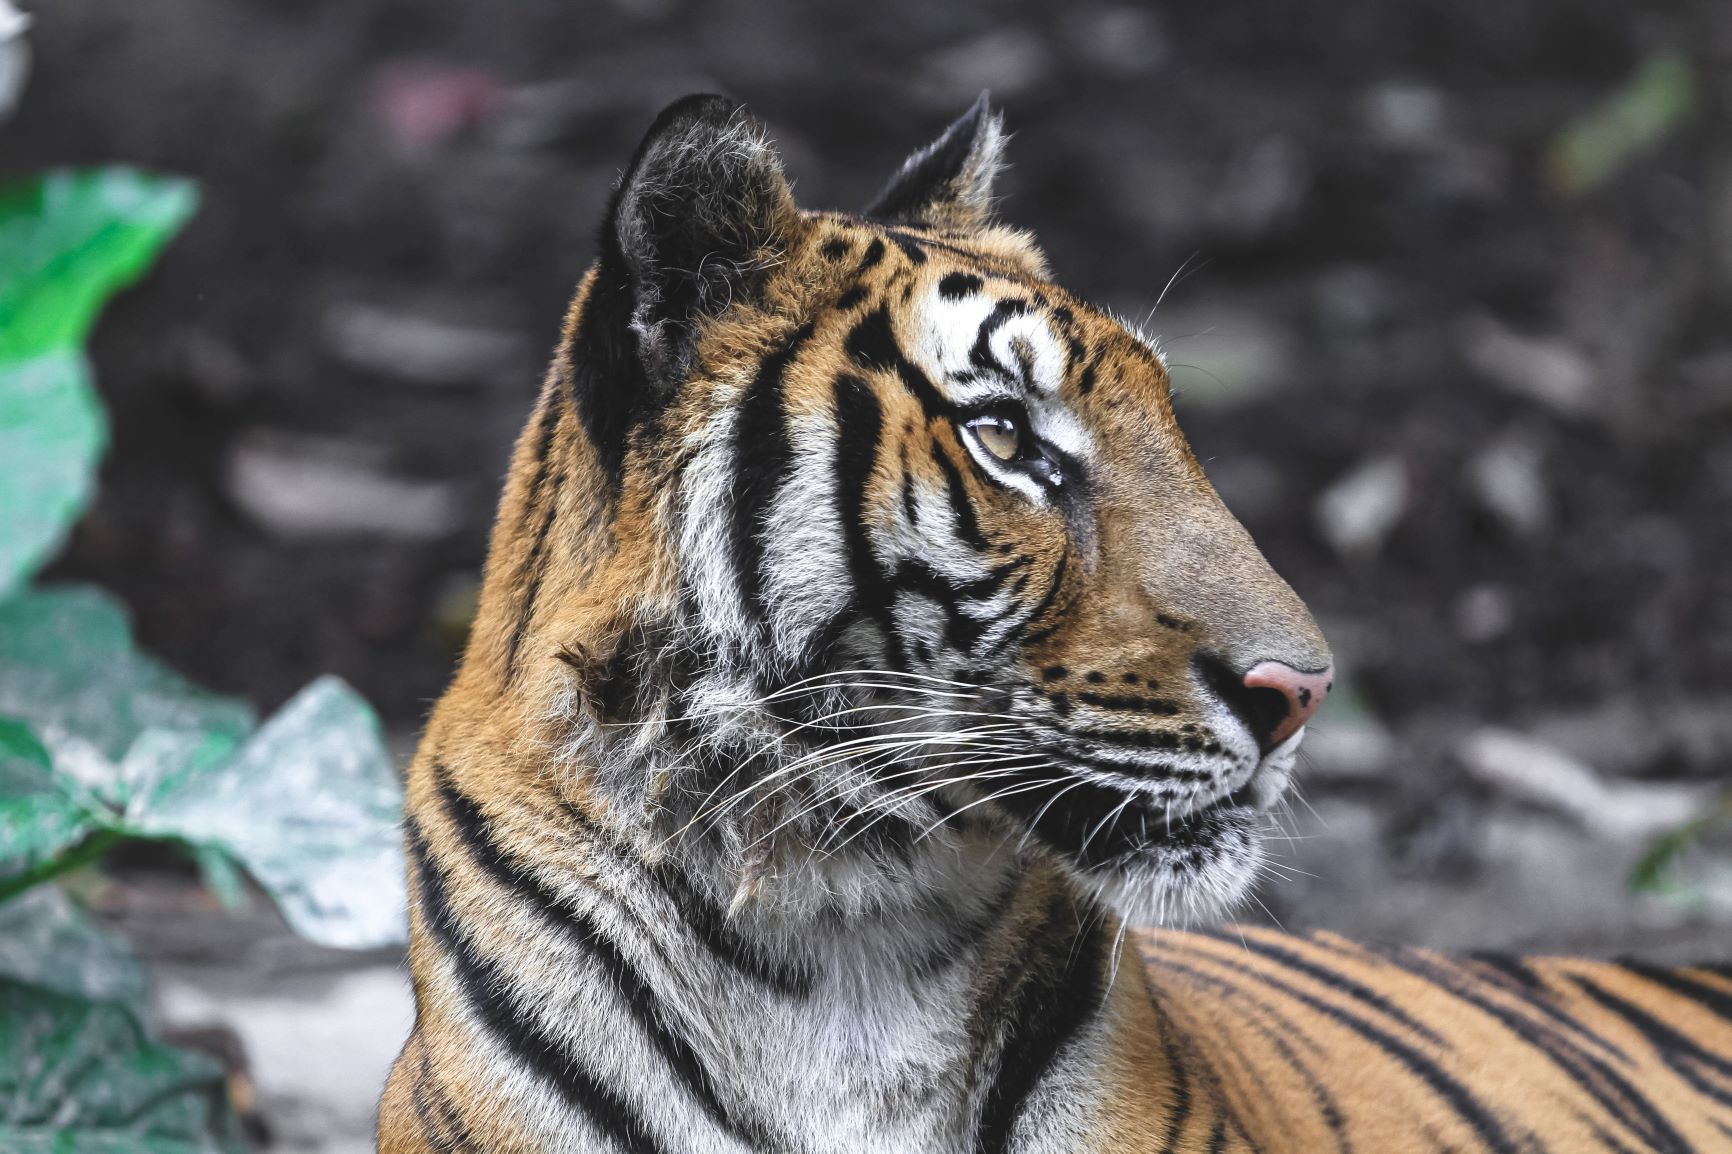 Saving Tigers in Nepal – Bhim's Lifelong Mission